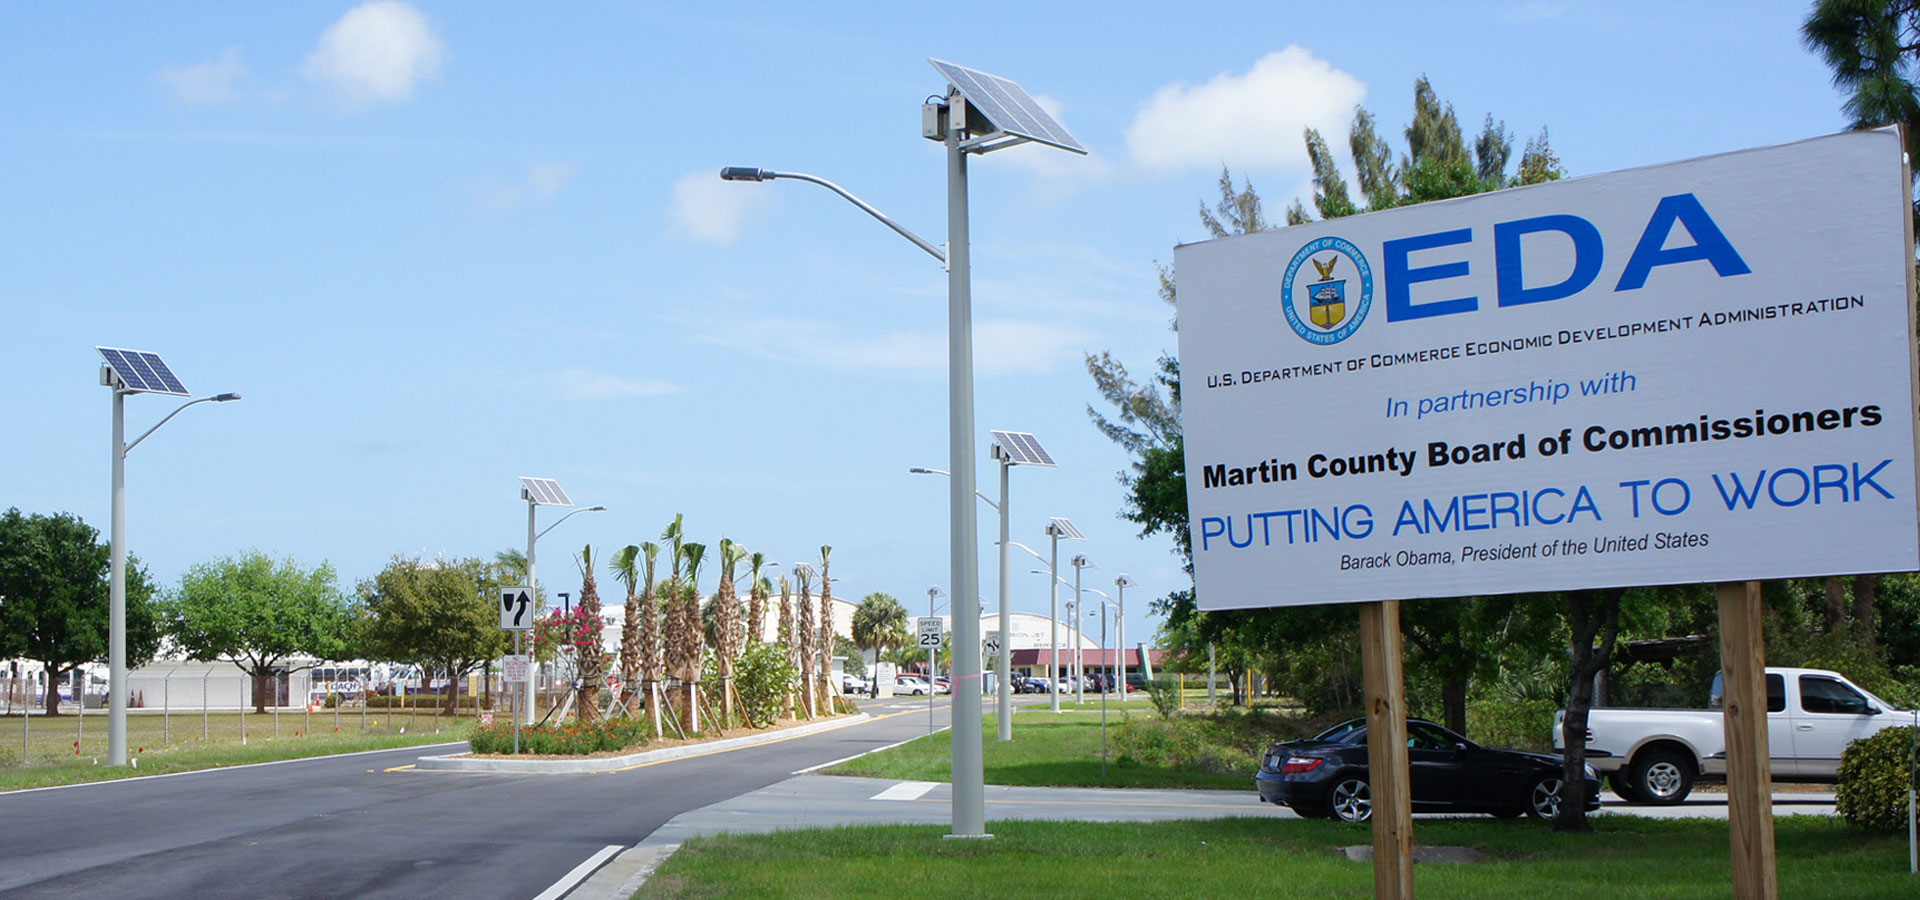 Solar LED Street Lighting Martin County Airport Road